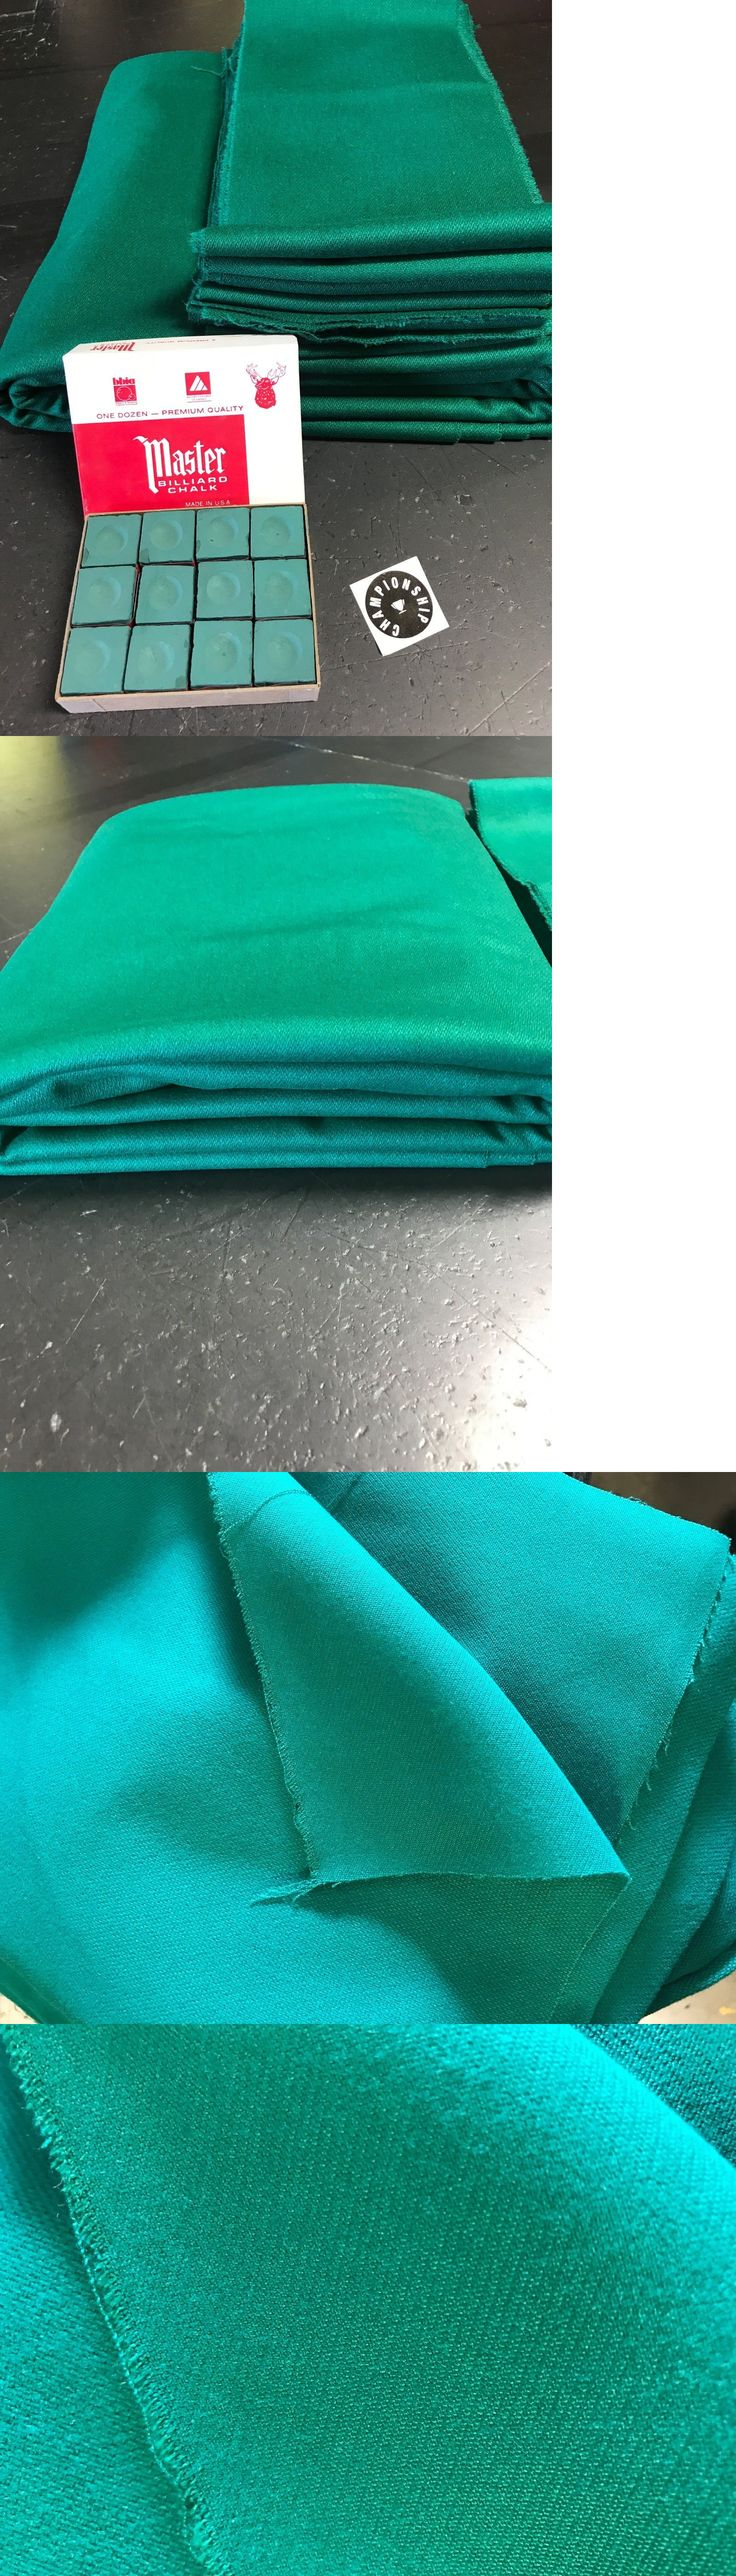 Tables 21213: Worsted Wool Green Pool Table Cloth For 9Ft 8Ft And 7Ft Tables (Fasted Cloth ) -> BUY IT NOW ONLY: $85 on eBay!